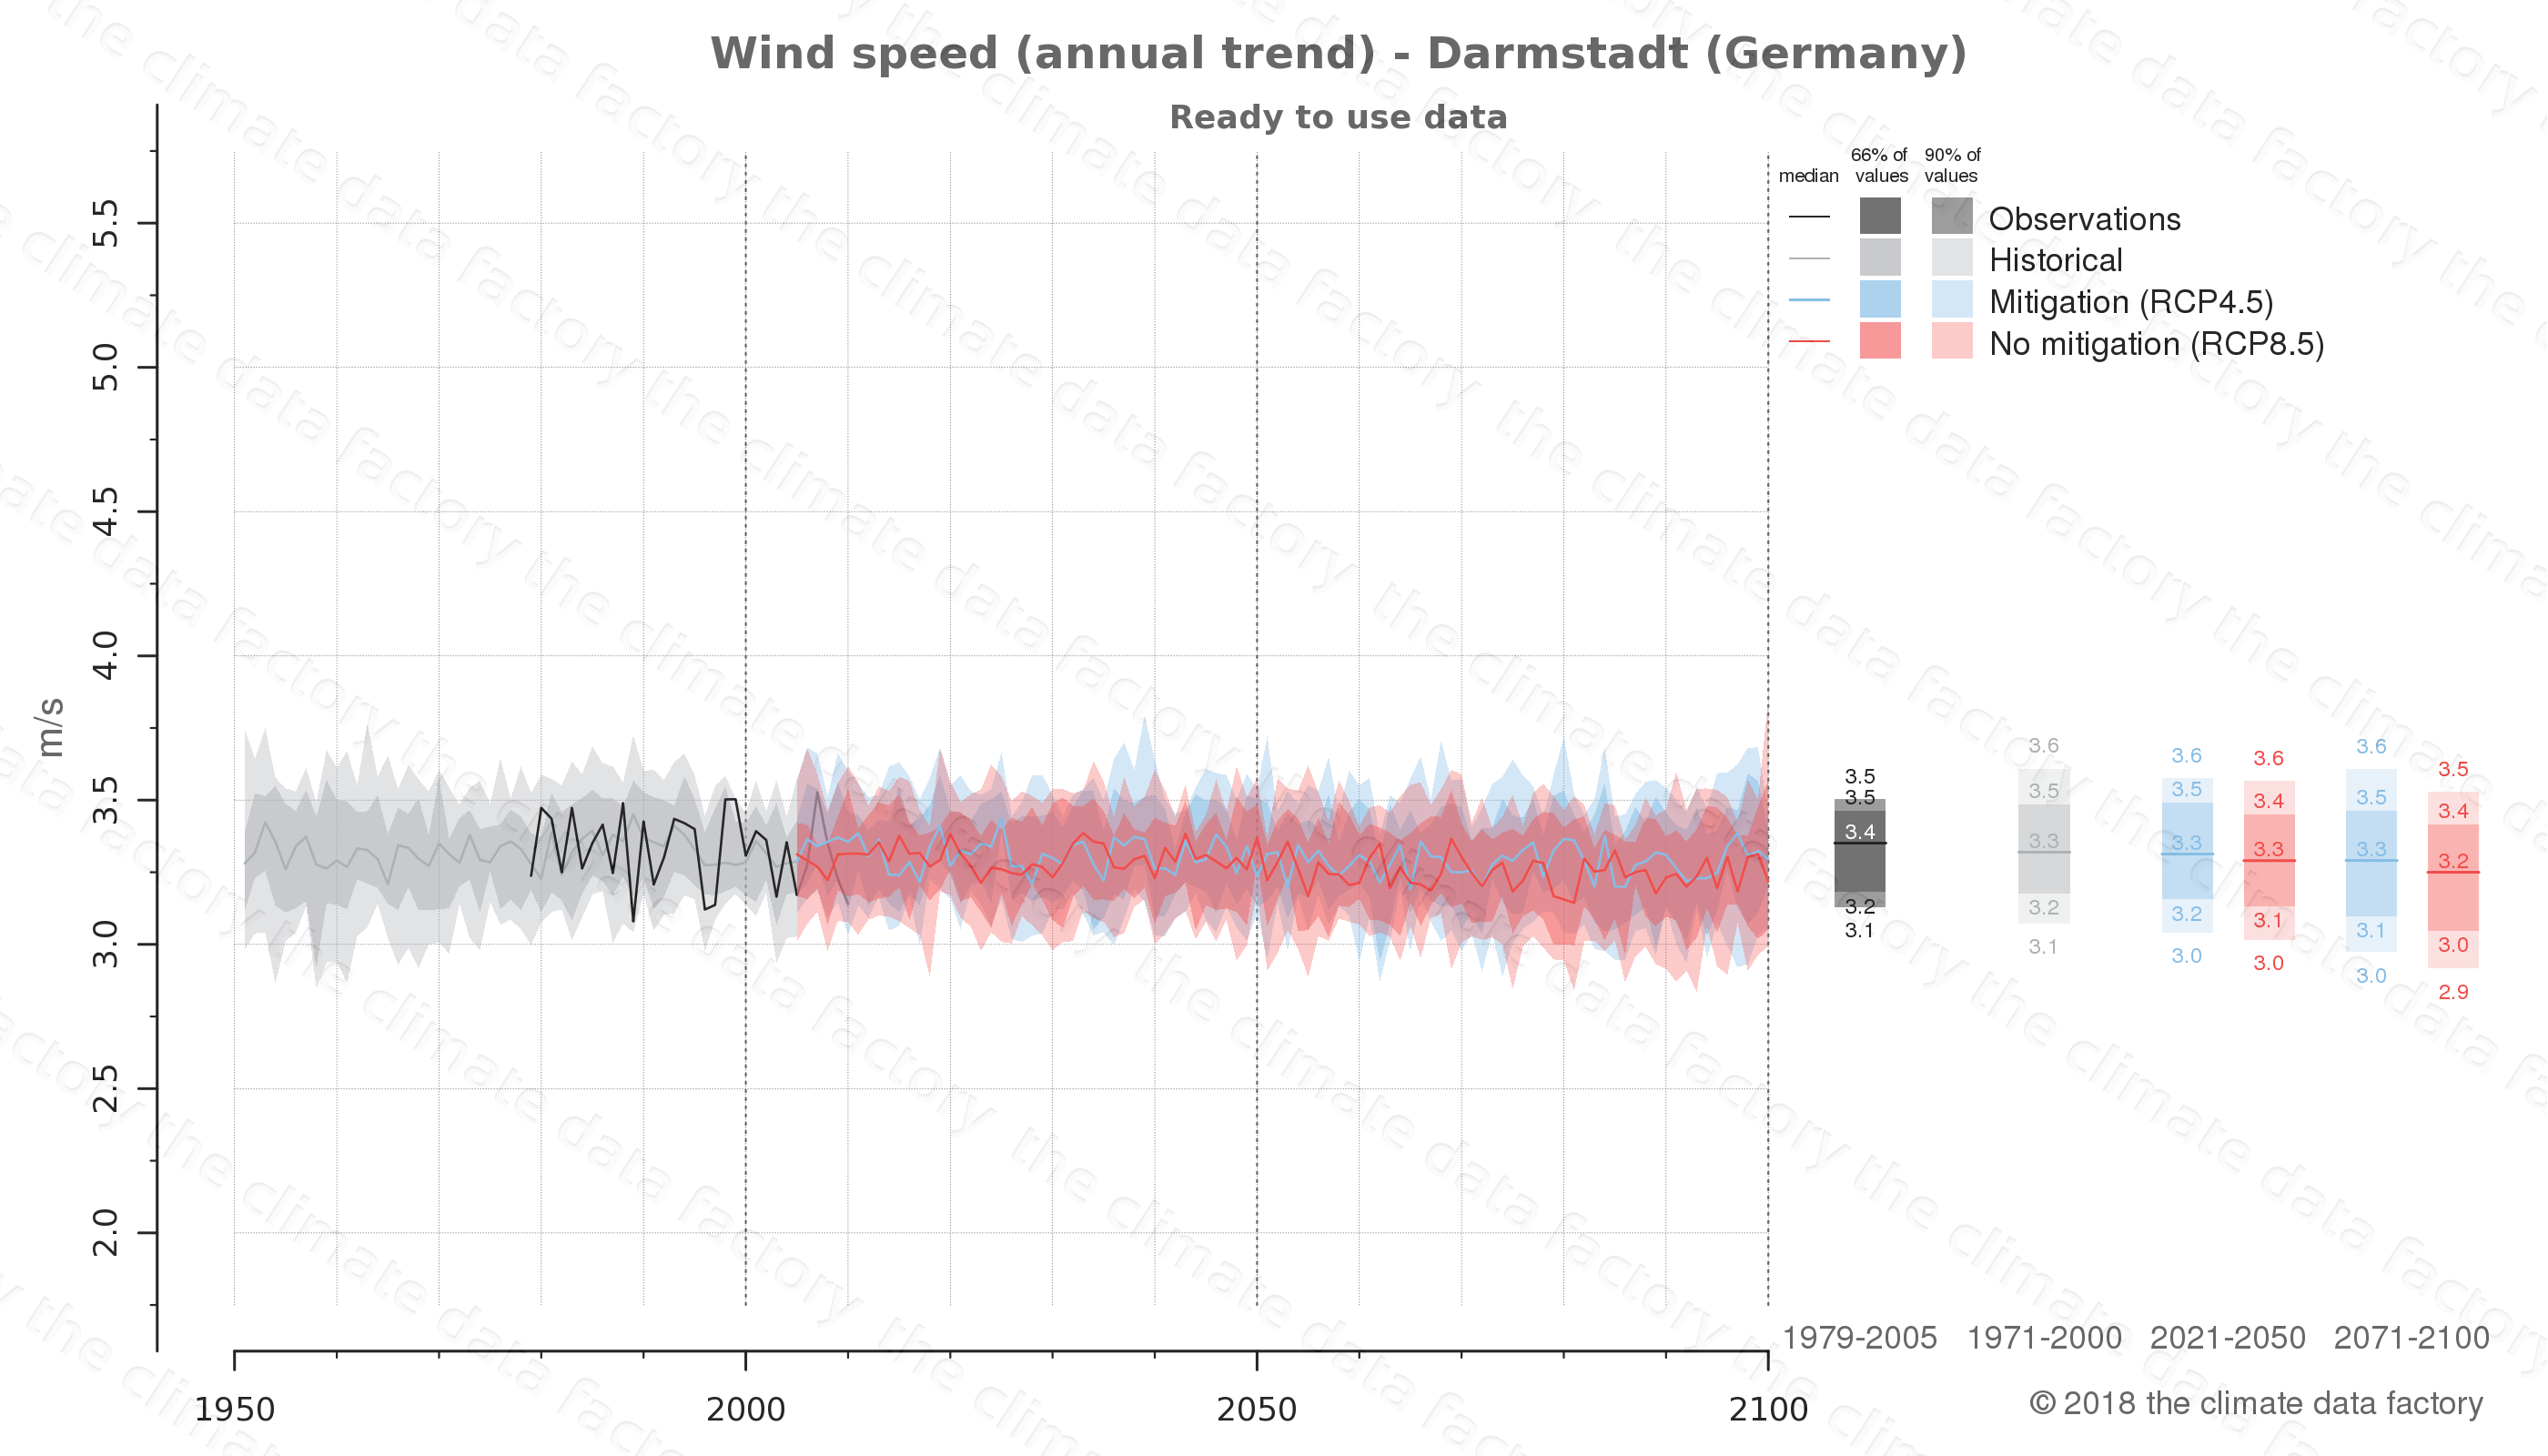 climate change data policy adaptation climate graph city data wind-speed darmstadt germany